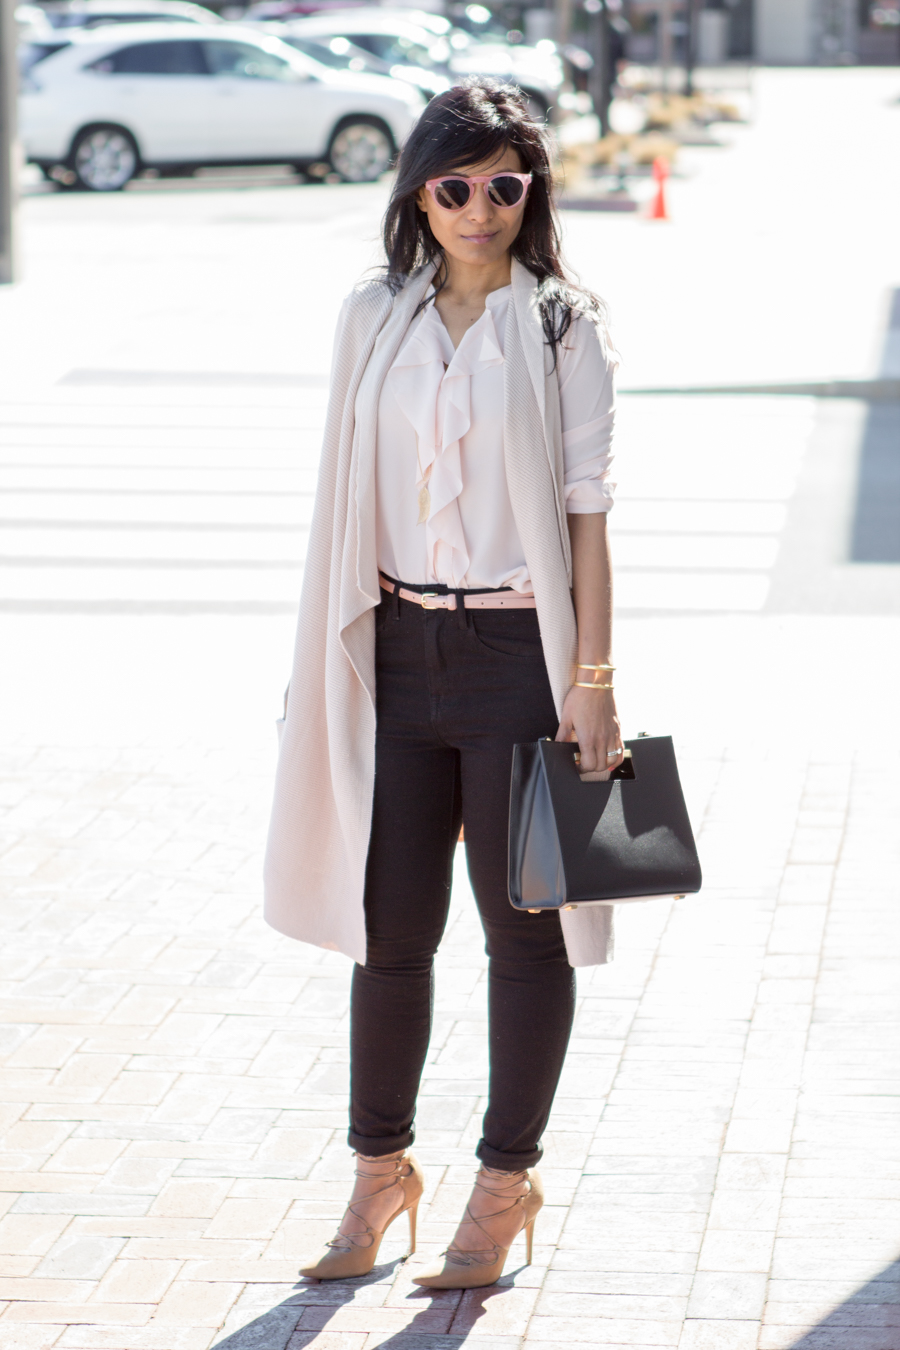 Work Style - Ruffles and Blush